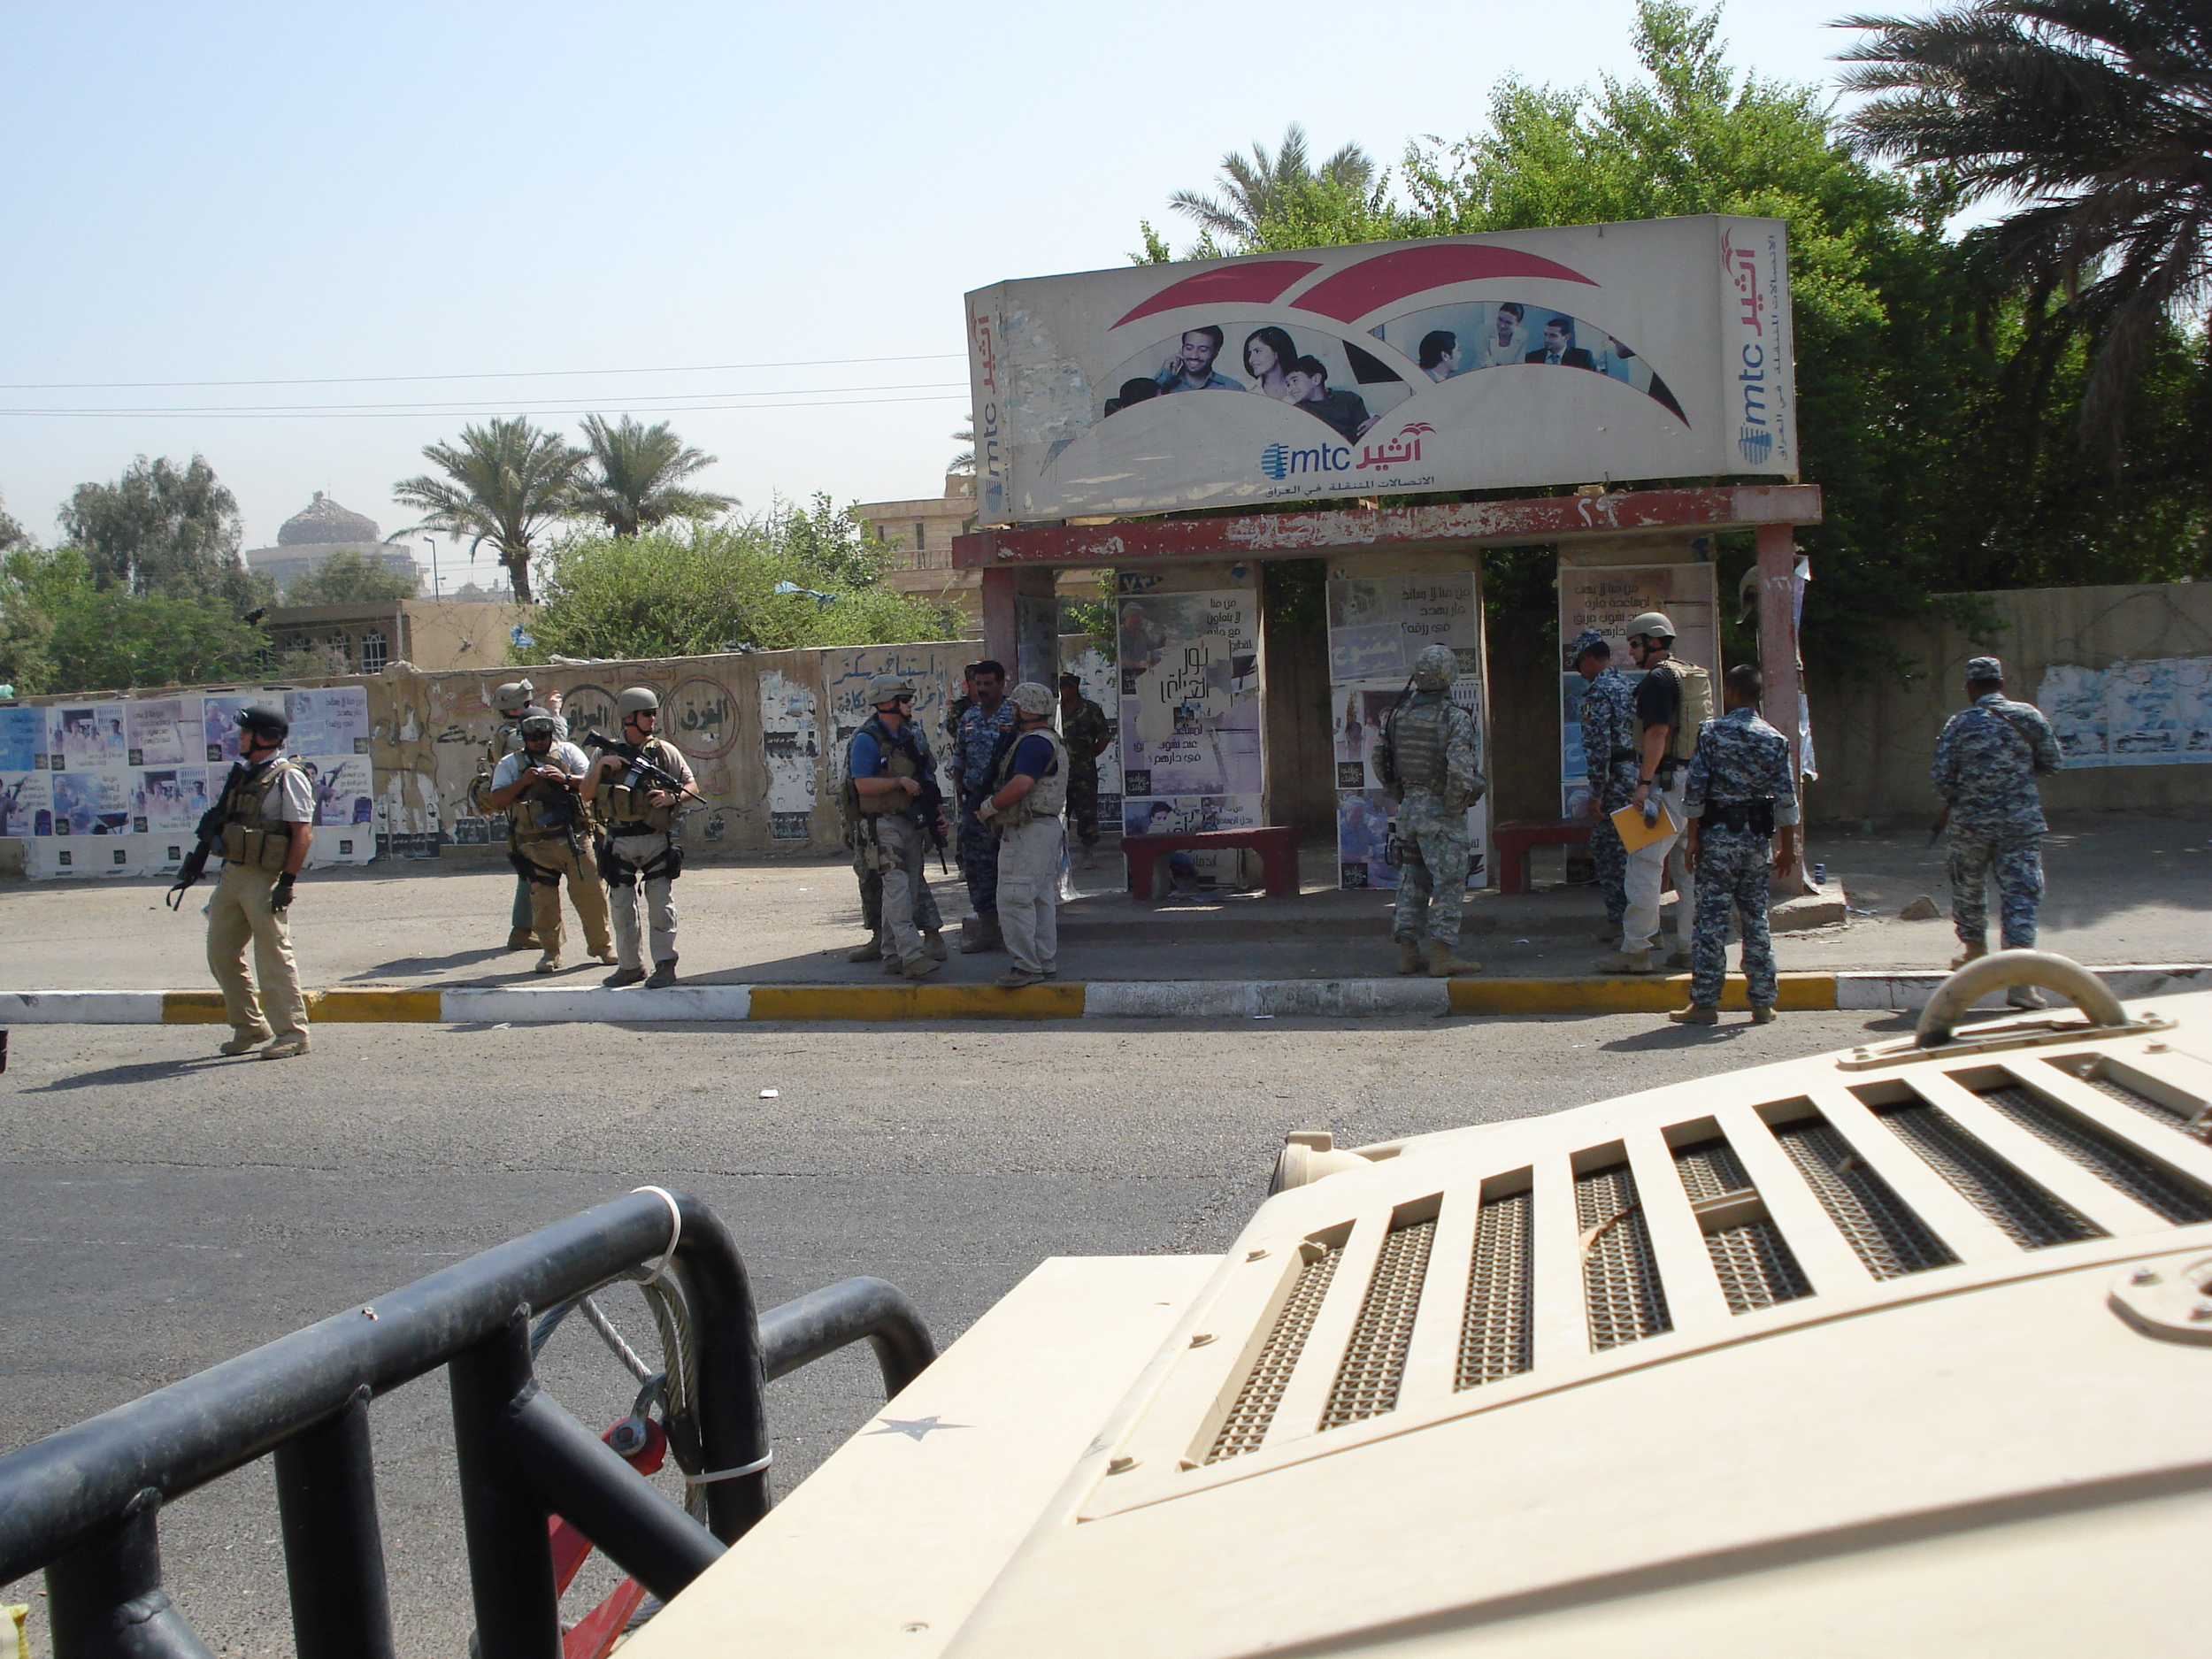 Notice how the American investigators are accompanied by the Iraqis.